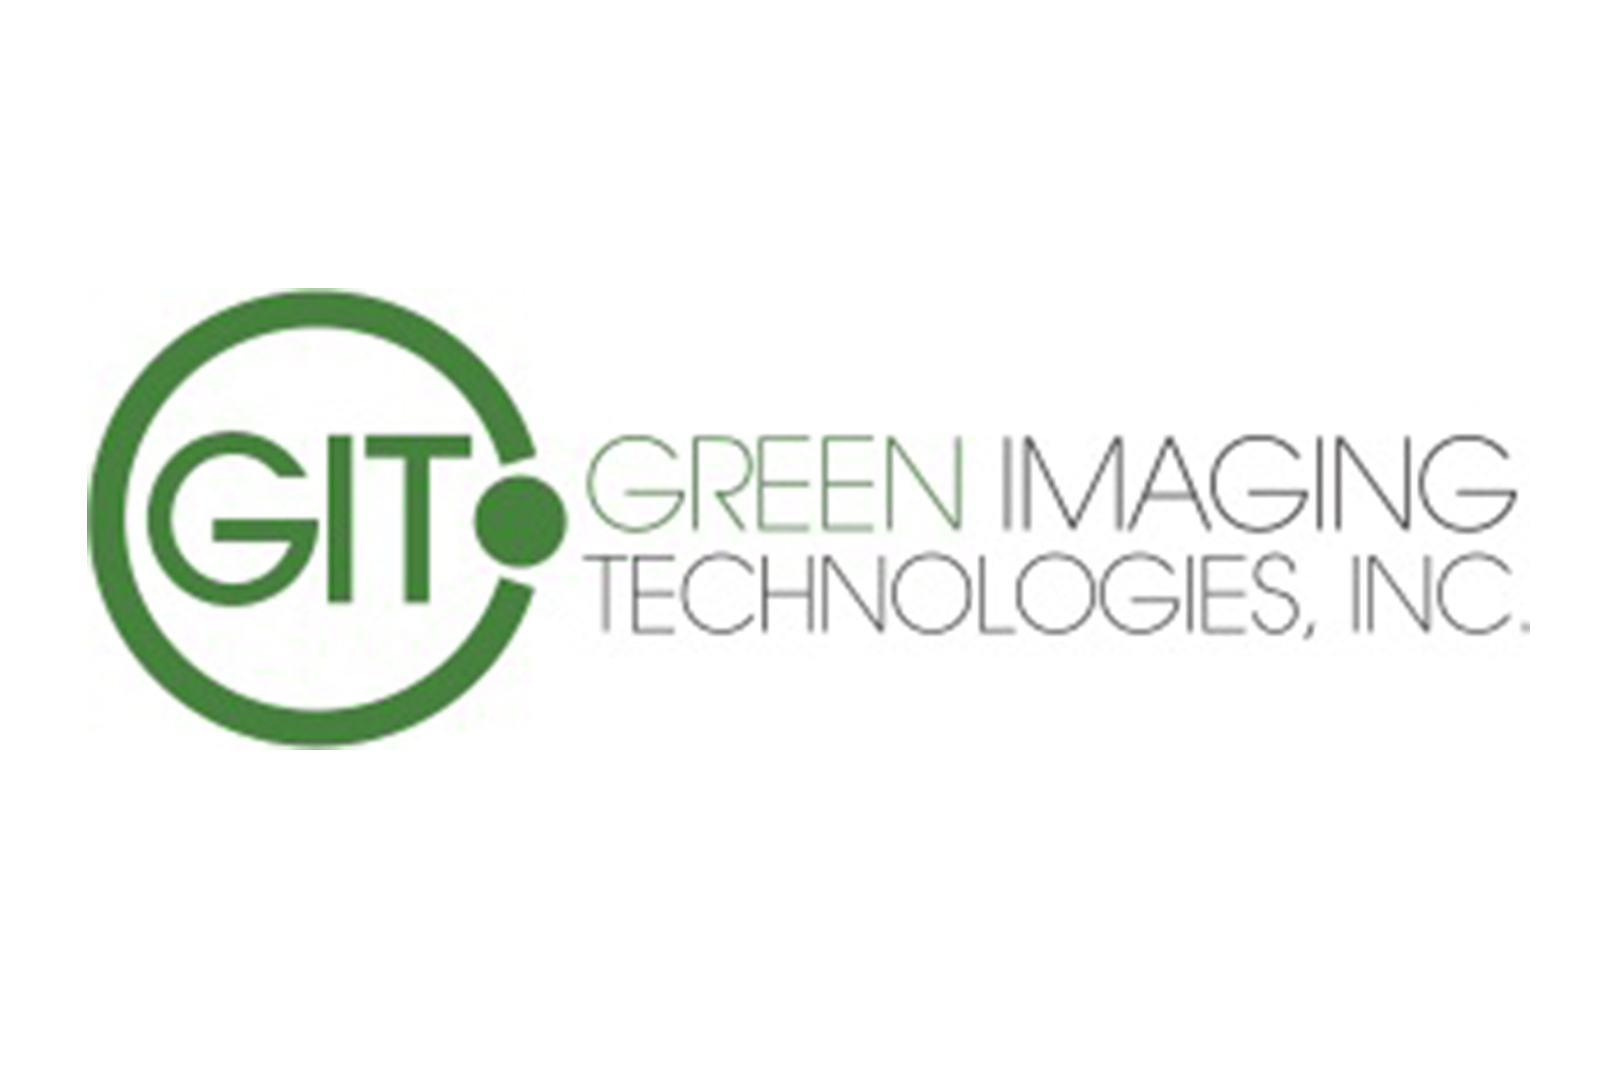 Green Imaging Technologies is incorporated